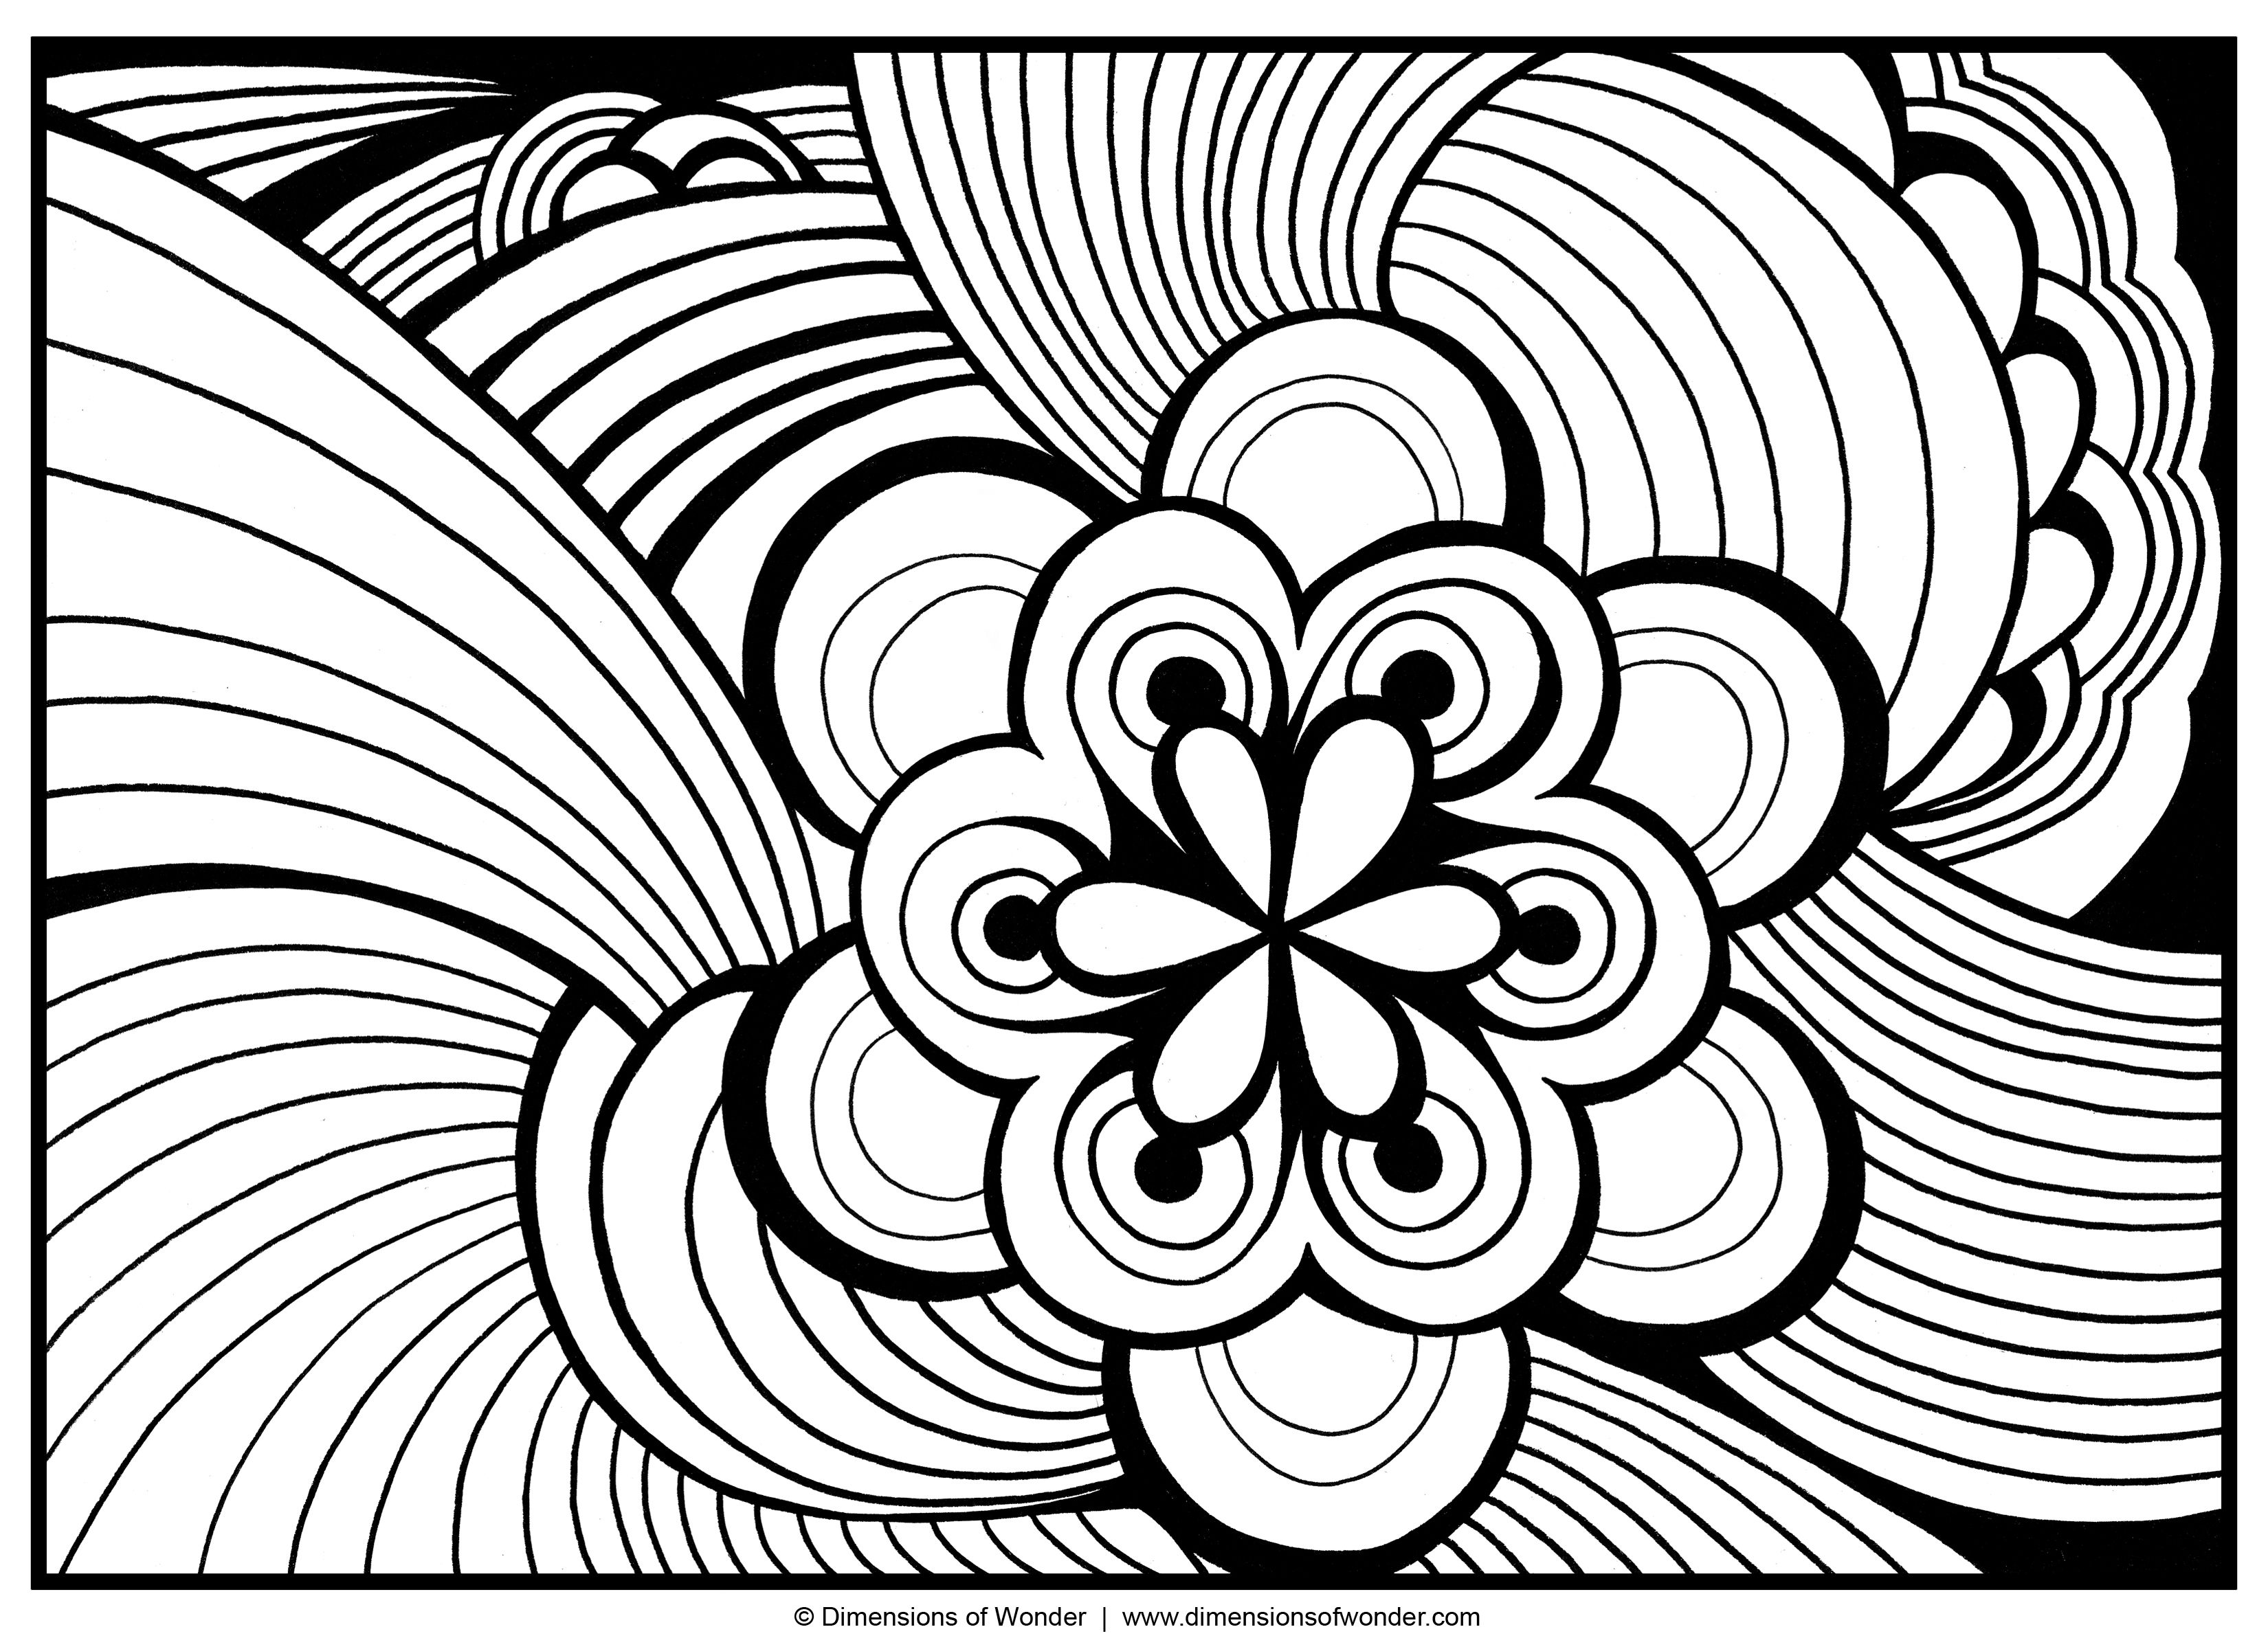 Printable Abstract Flower Coloring Pages - Coloring Page